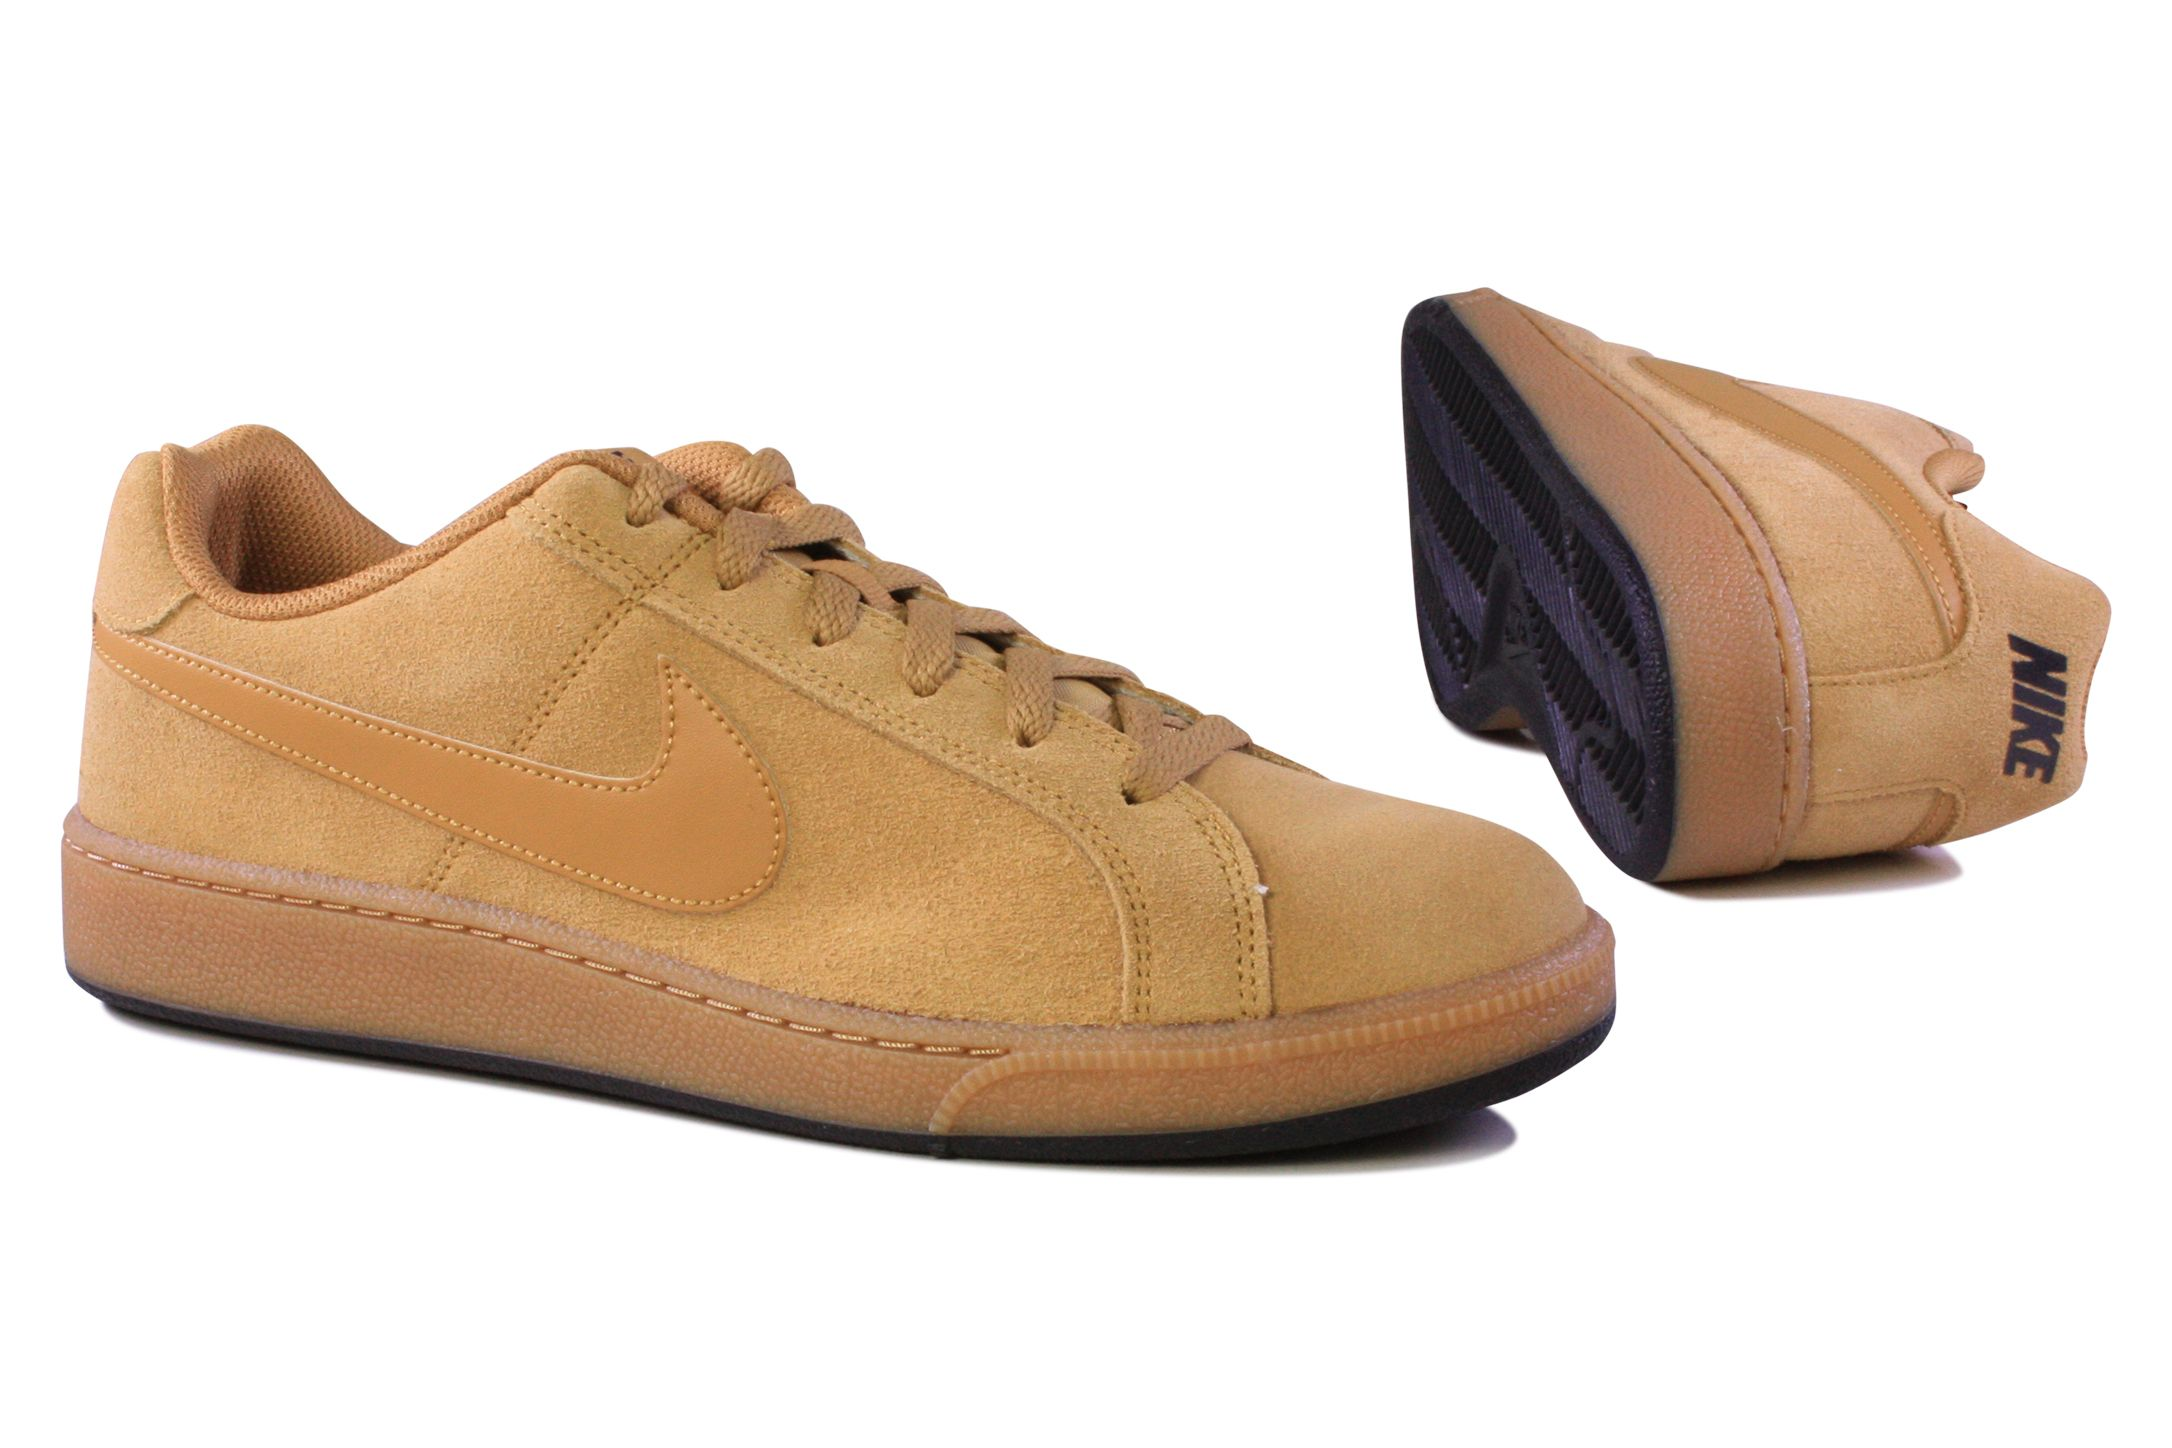 COURT ROYALE SUEDE 819802-700